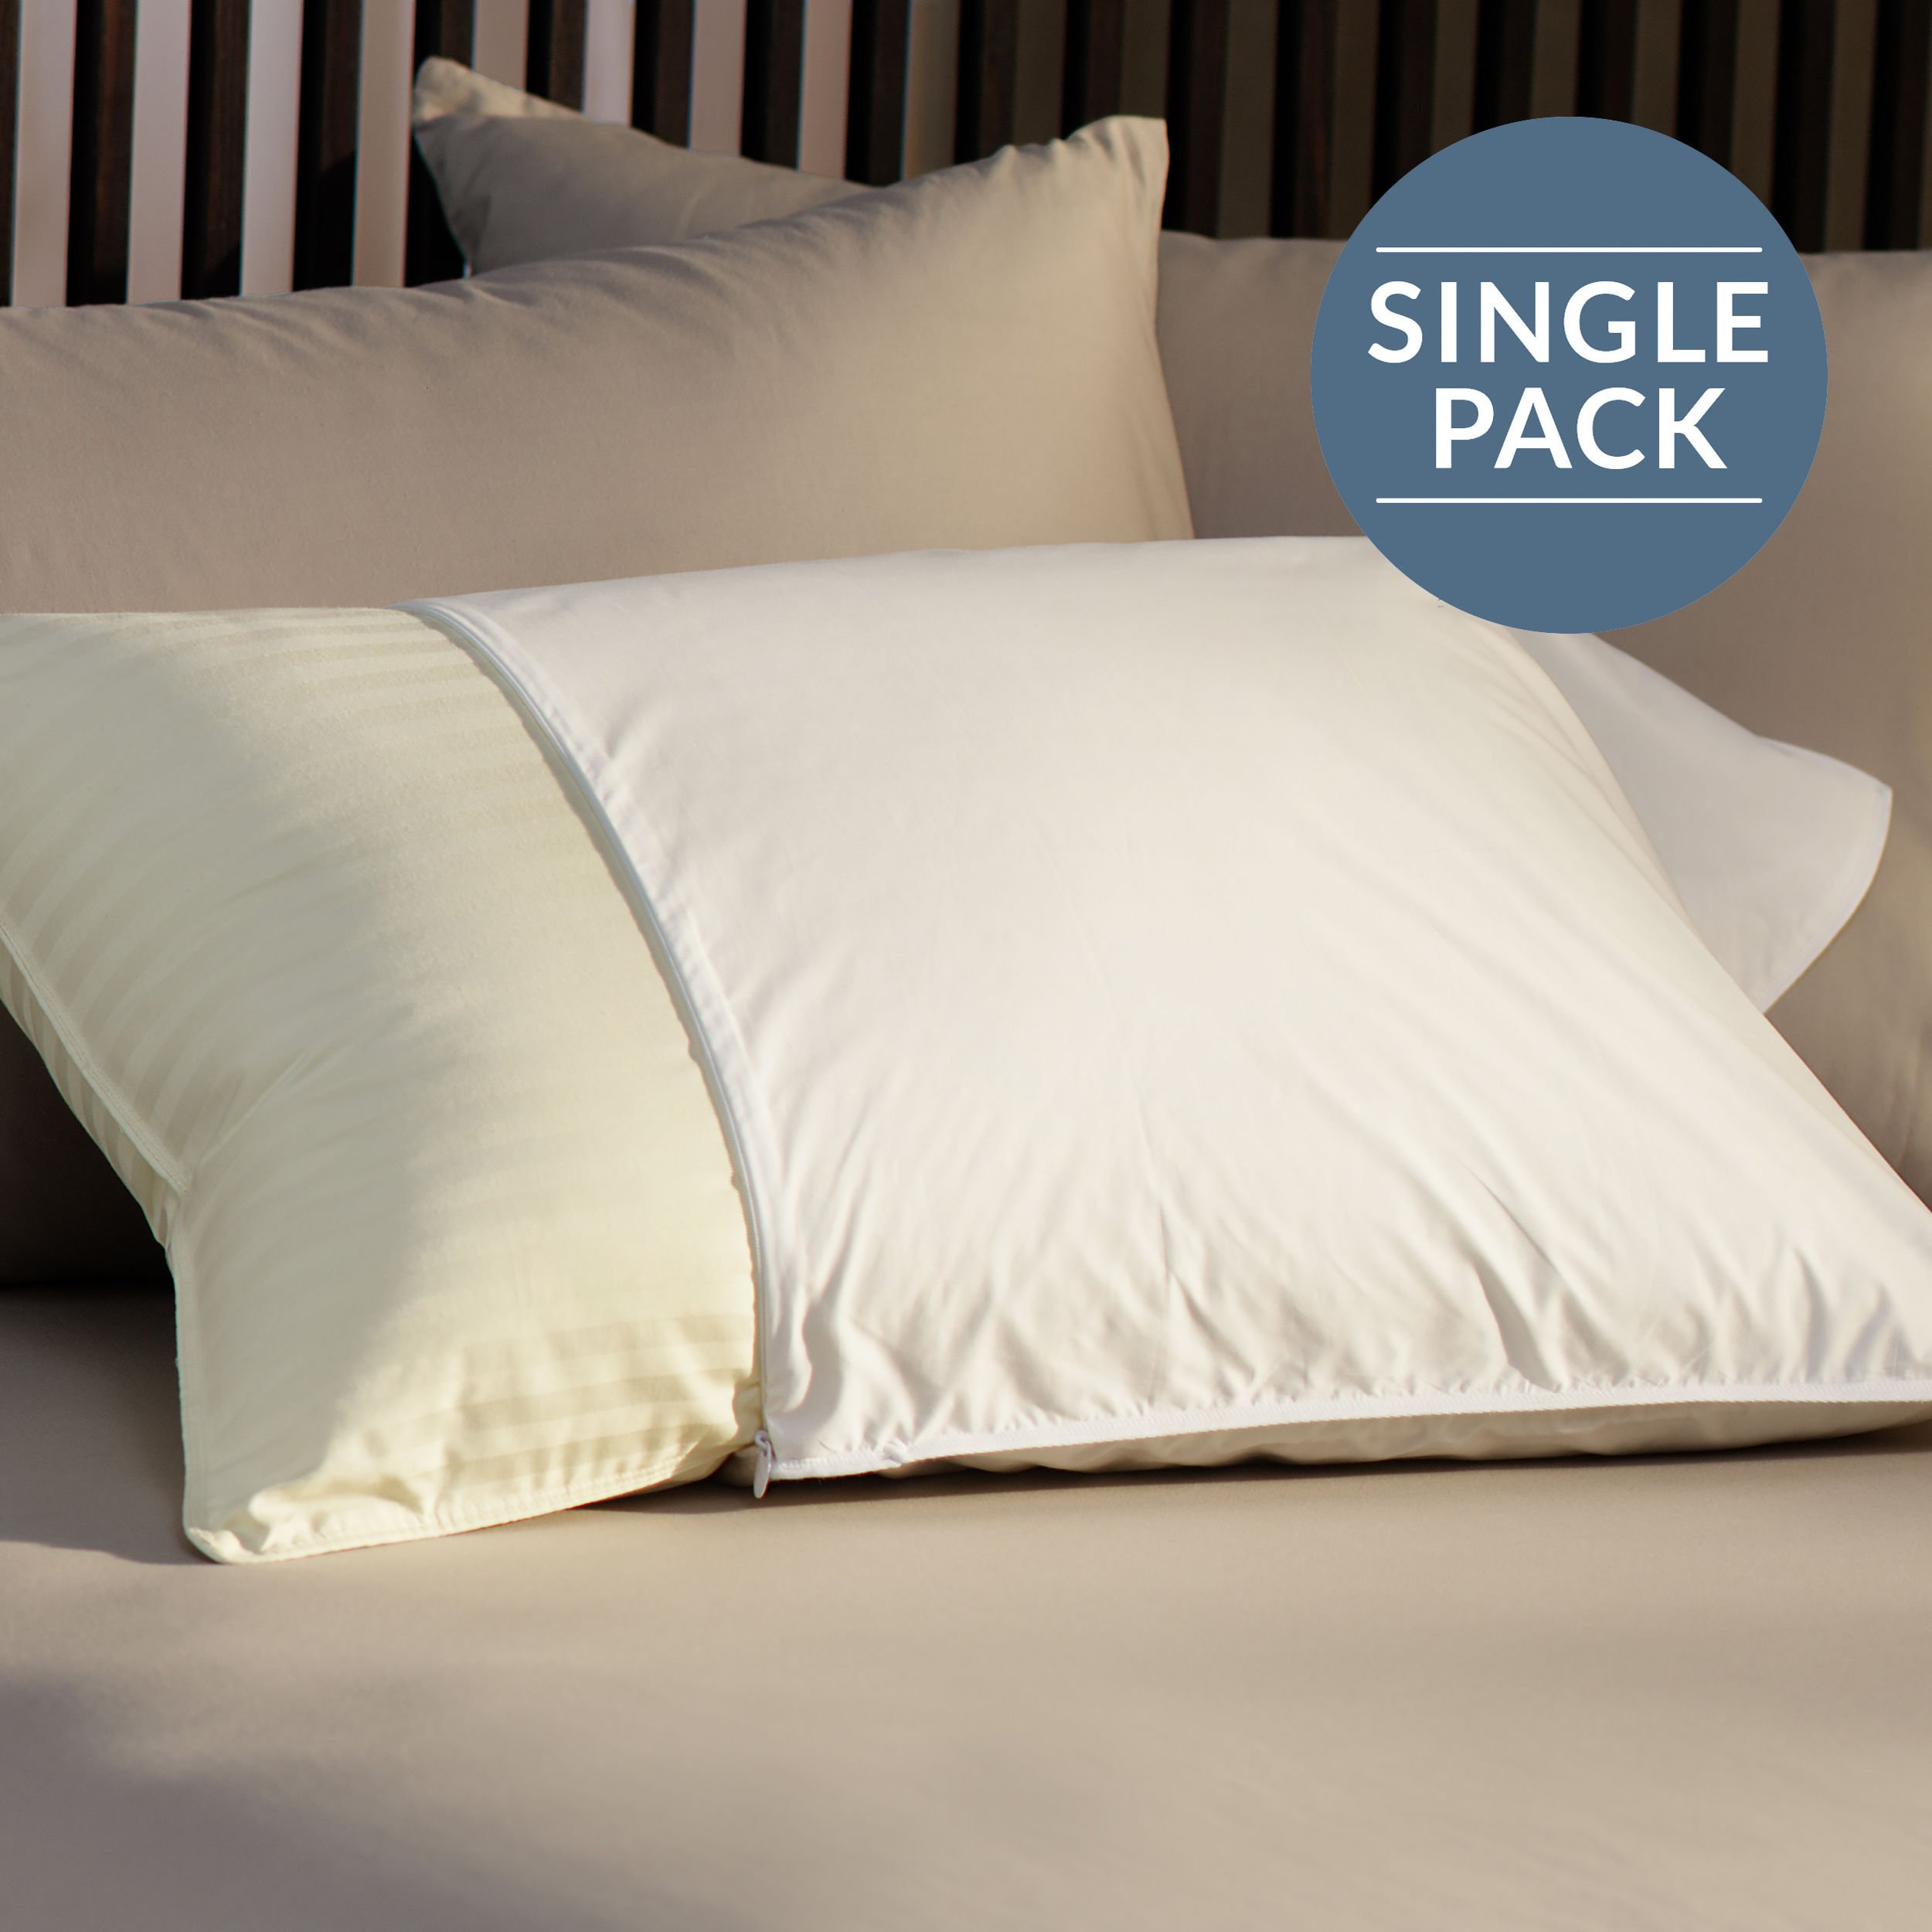 GoLinens Restful Nights Essential Pillow Protector [305 Thread Count Cotton, All-Natural Breathability, Hypoallergenic, Check Pattern, Hidden Zipper] by Pacific Coast Feather - King Size